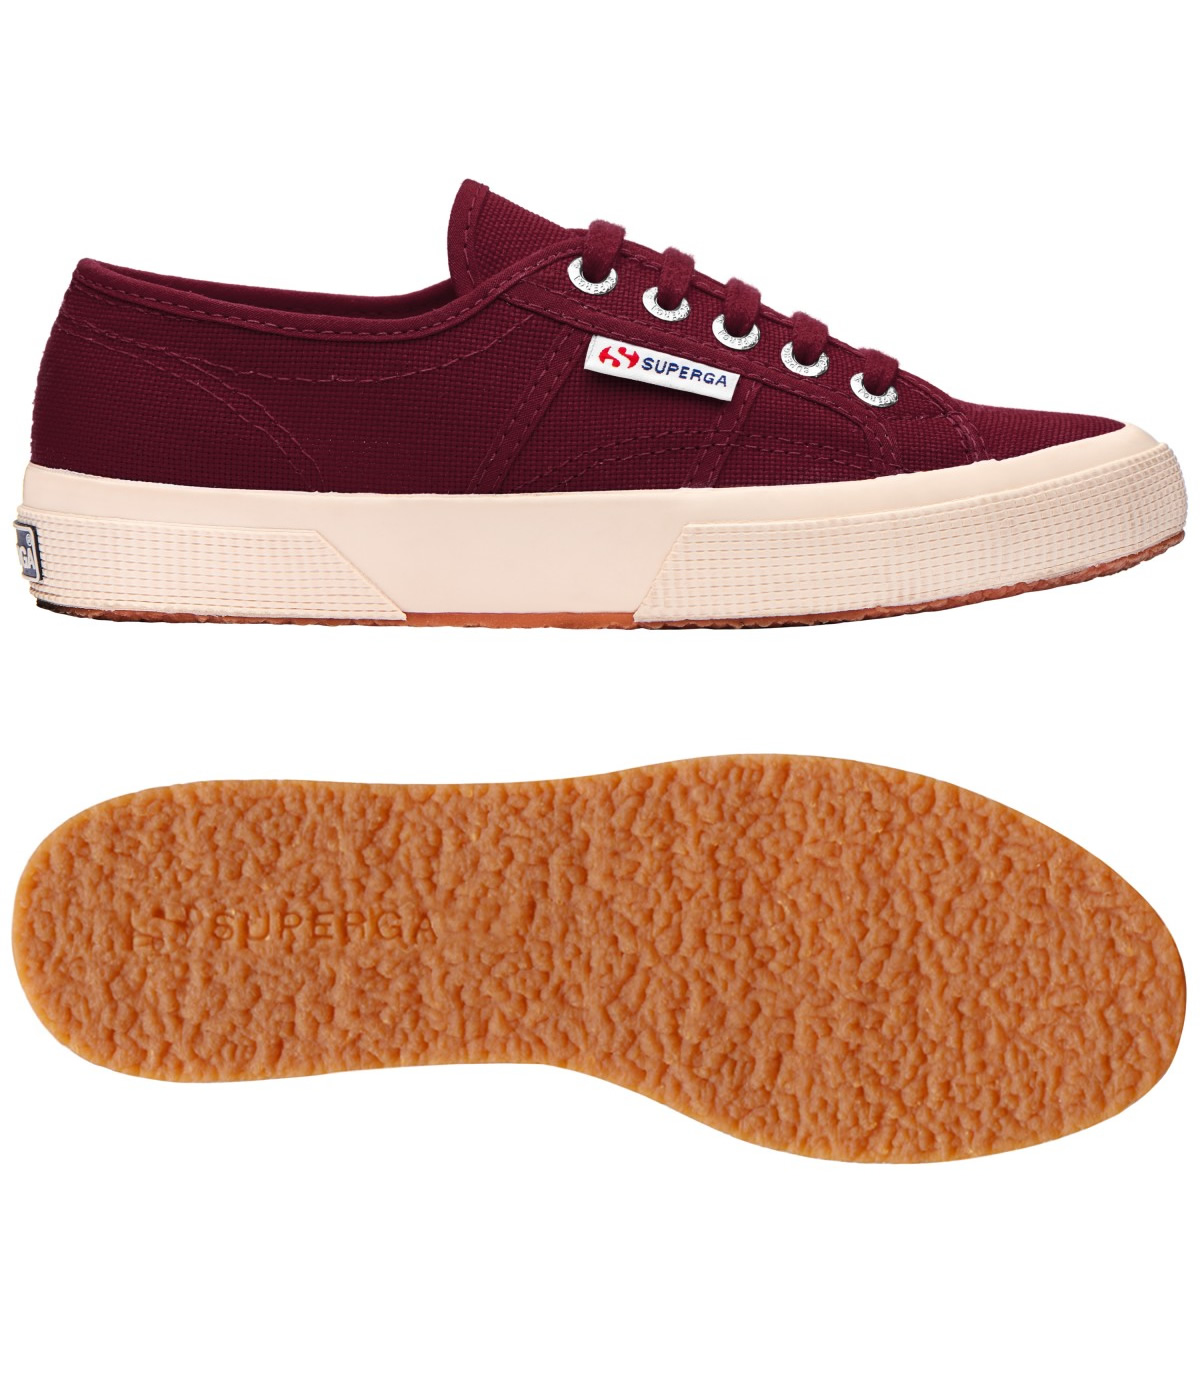 Zapatillas Superga Burdeos 2750